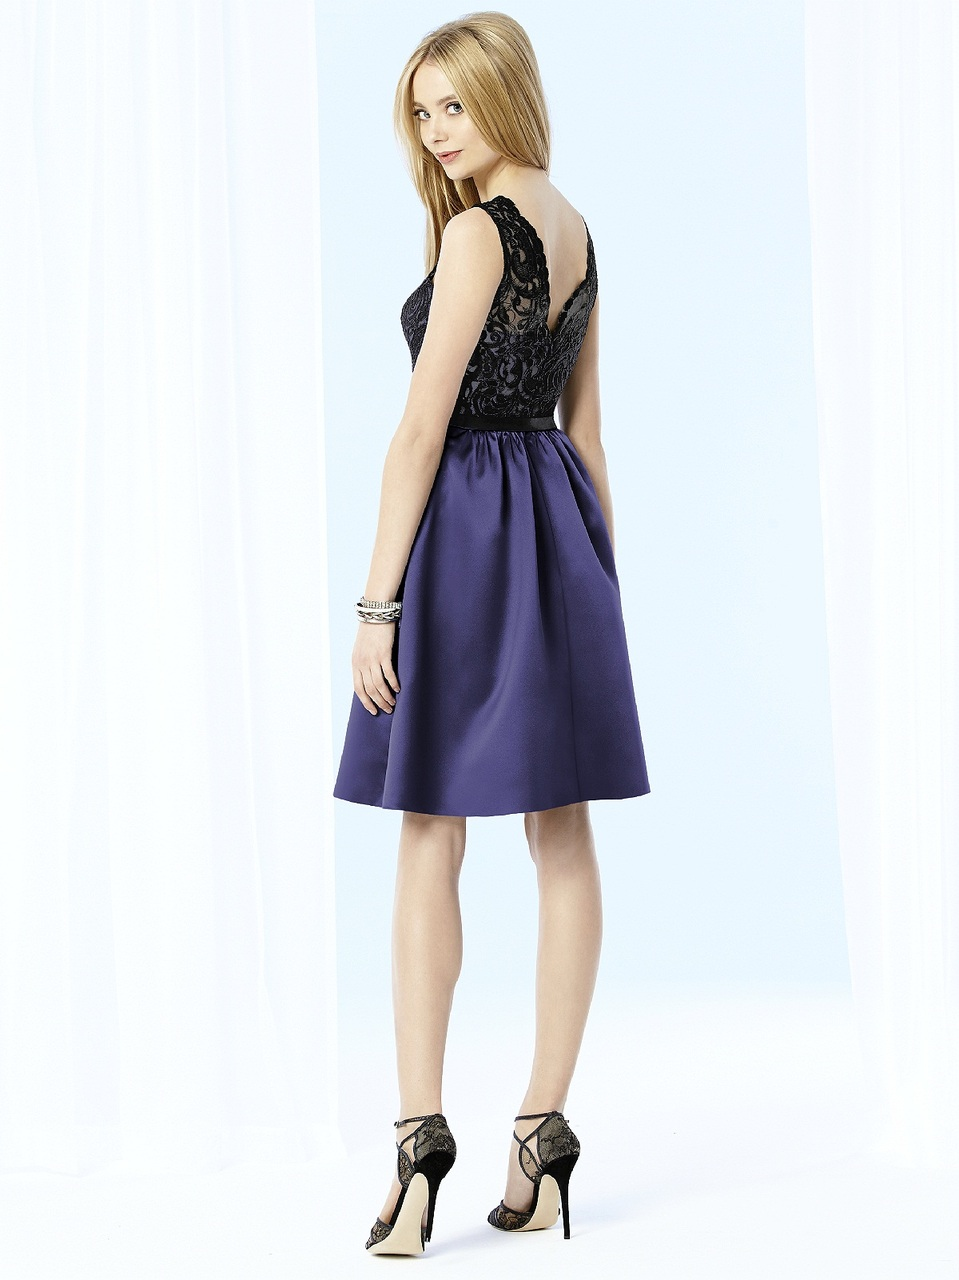 After six bridesmaids dress 6707 by dessy bridesmaids dresses after six bridesmaids dress style 6707 by dessy matte satin quick ship ombrellifo Gallery